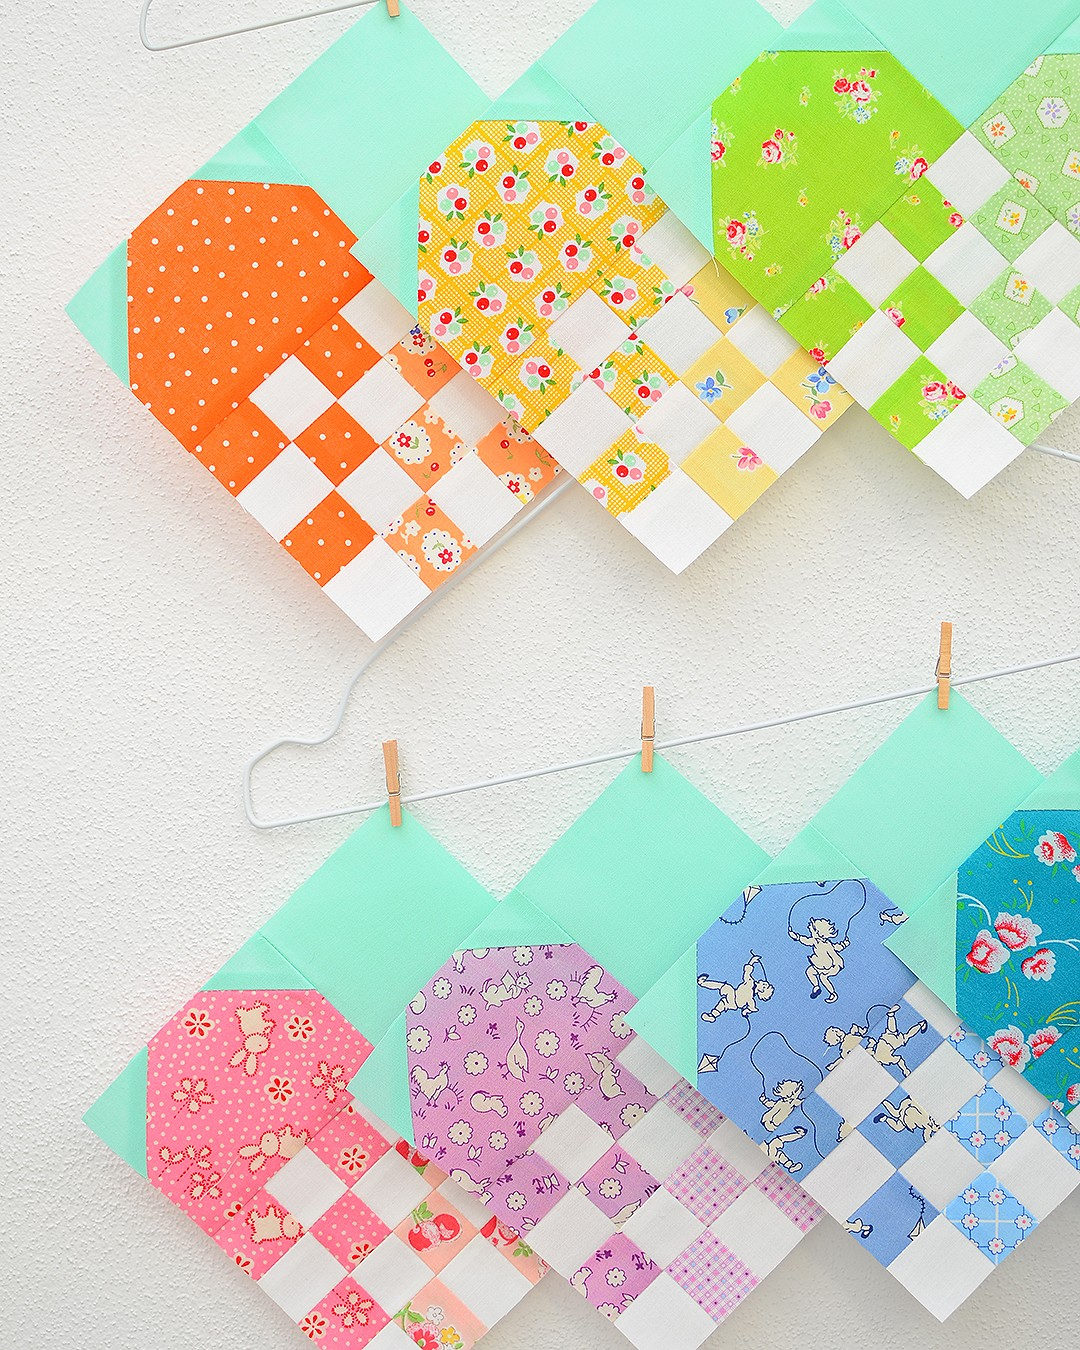 checkered-heart-quilt-free-quilt-pattern-free-tutorial